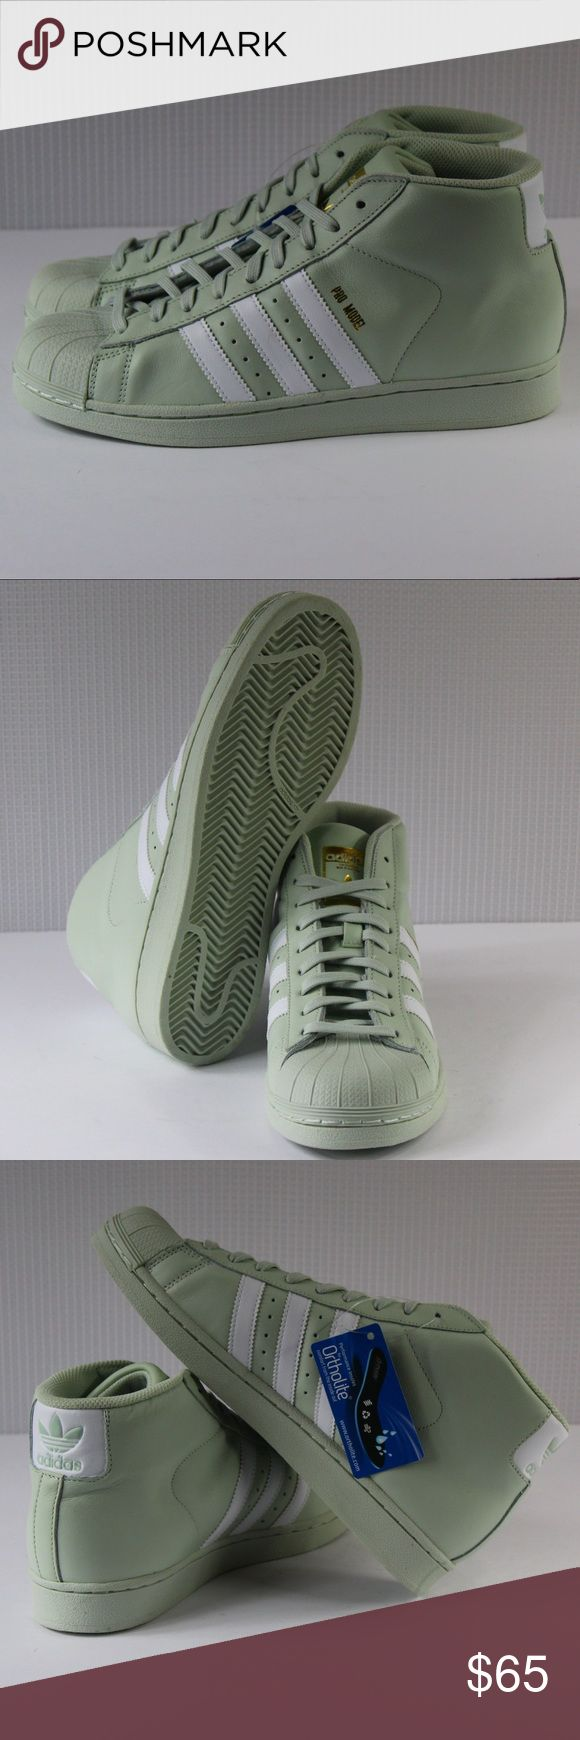 Adidas BRAND NEW!!! Adidas Pro Model. Youth size 6/Women's 7.5. Youth size 7/Women's size 8.5. Classic shell toe high top design. Brand new without box. Don't miss this deal!!! adidas Shoes Sneakers